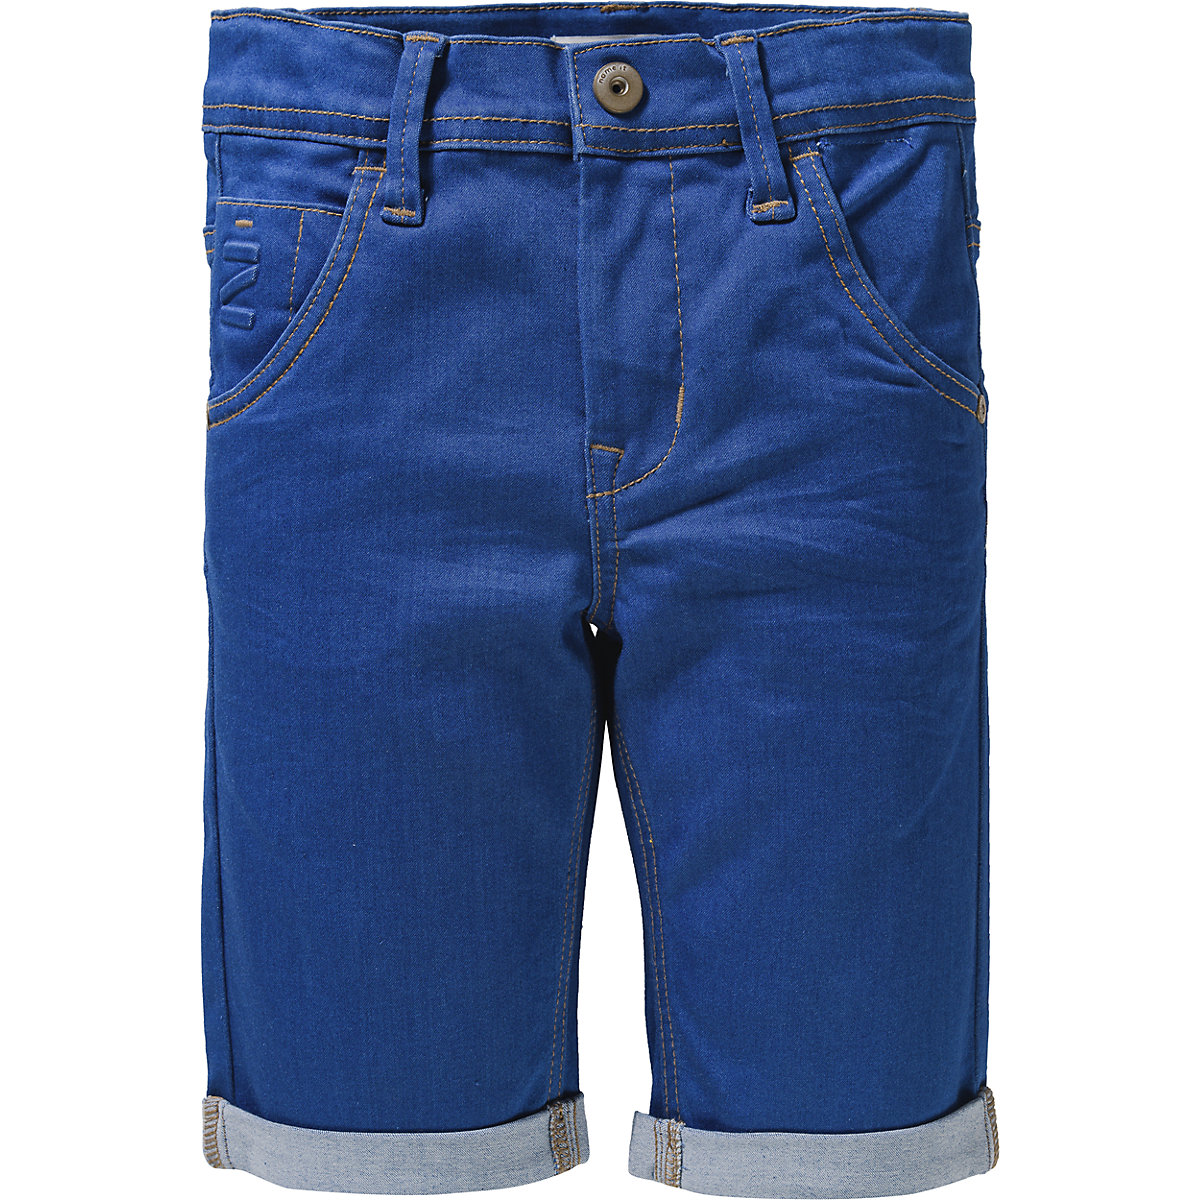 NAME IT Shorts 10227967 for boys and girls child sport for teenagers clothes Cotton Elastic Waist Boys